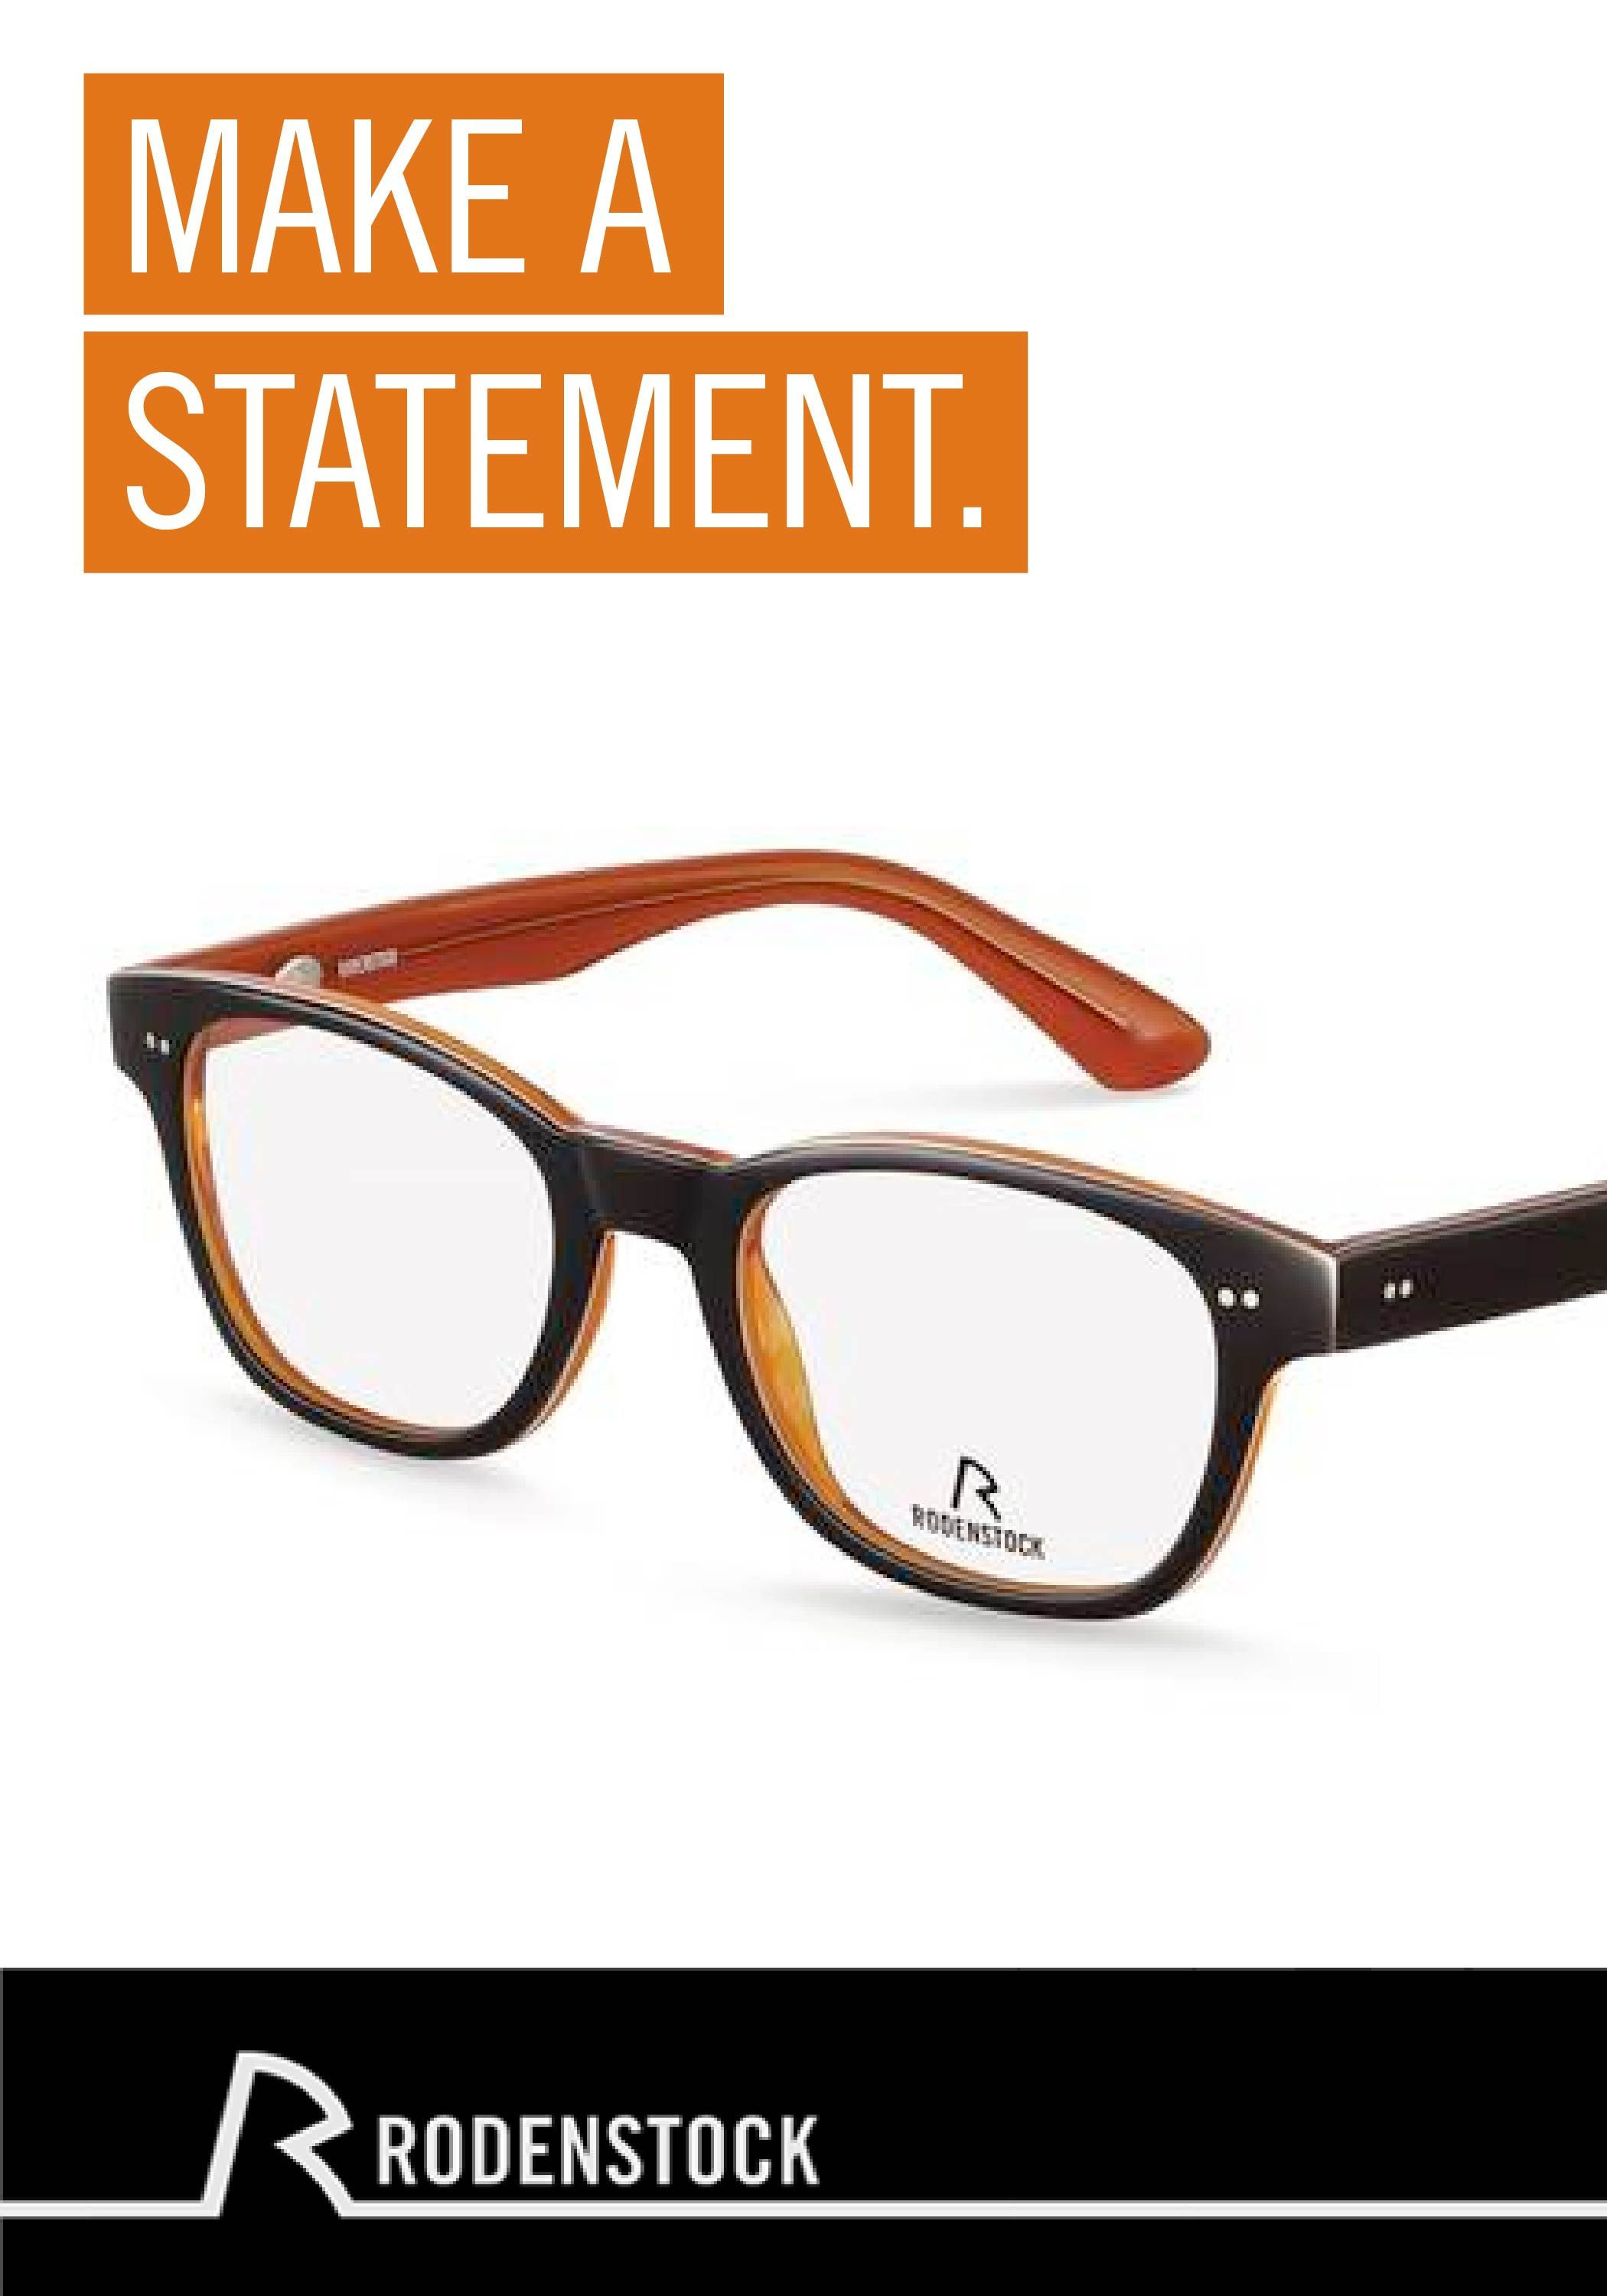 Looking for a new pair of glasses? Make a statement every day with ...